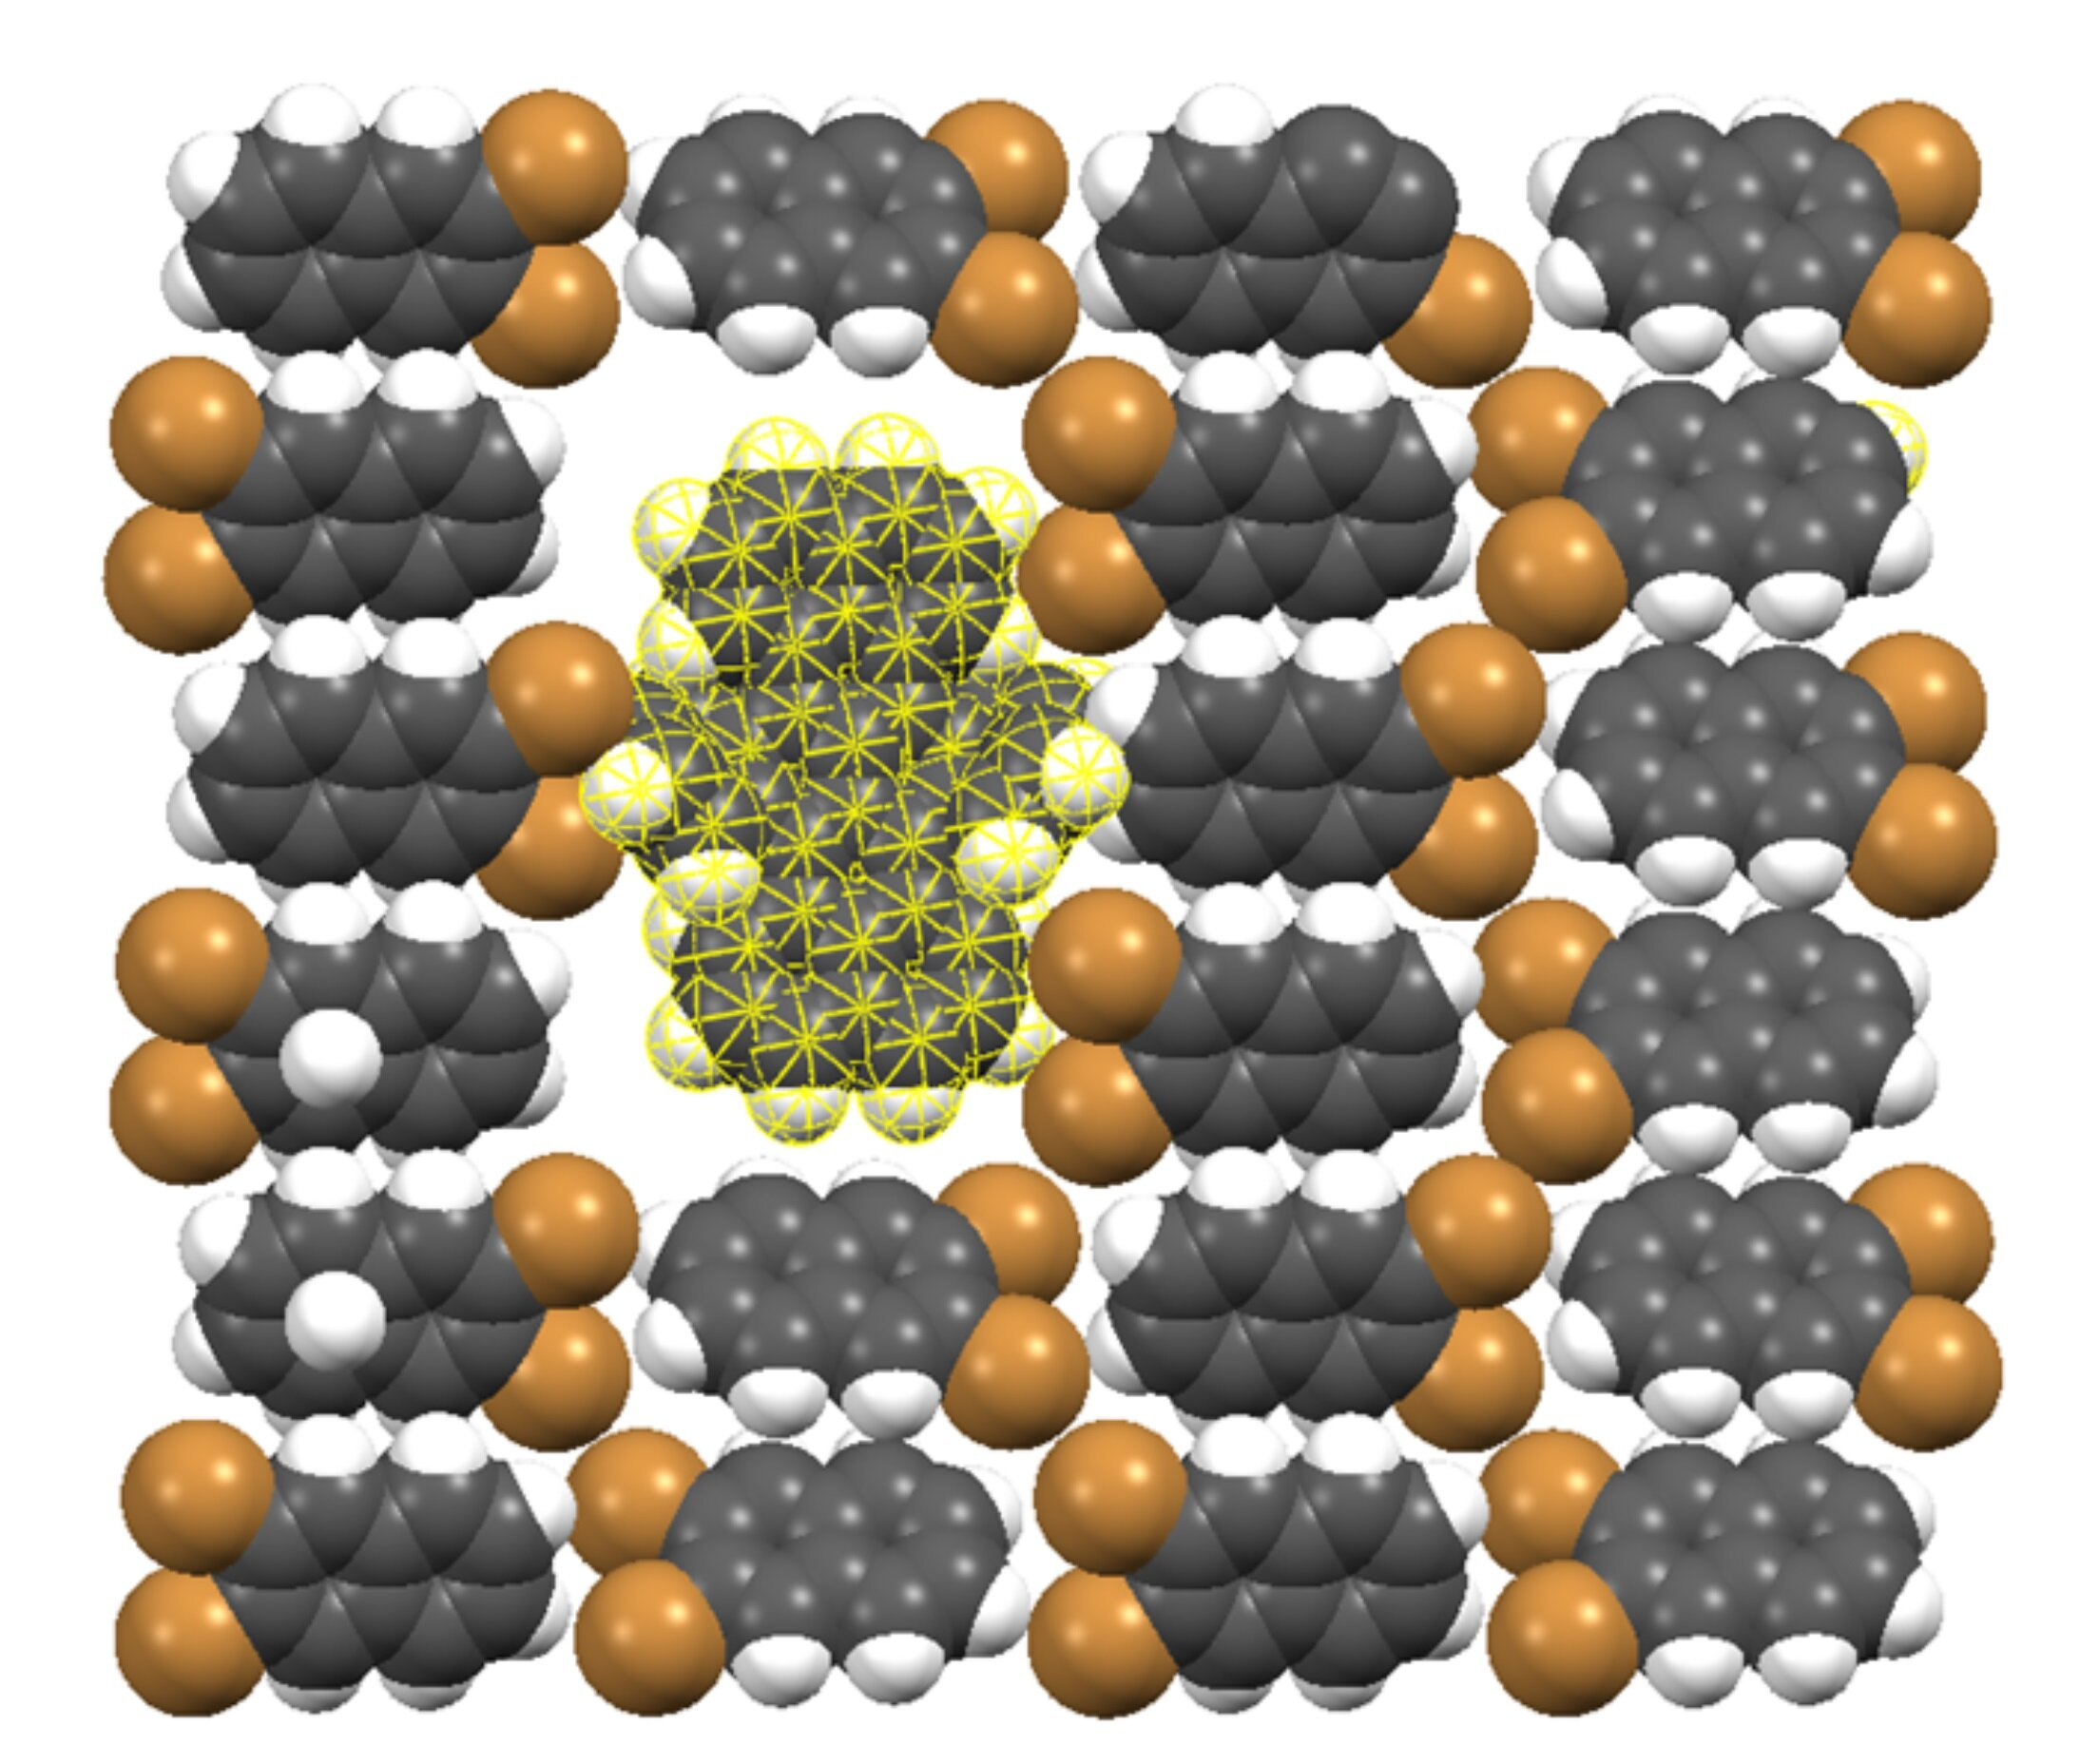 Single molecules show promise to optically detect single electrons